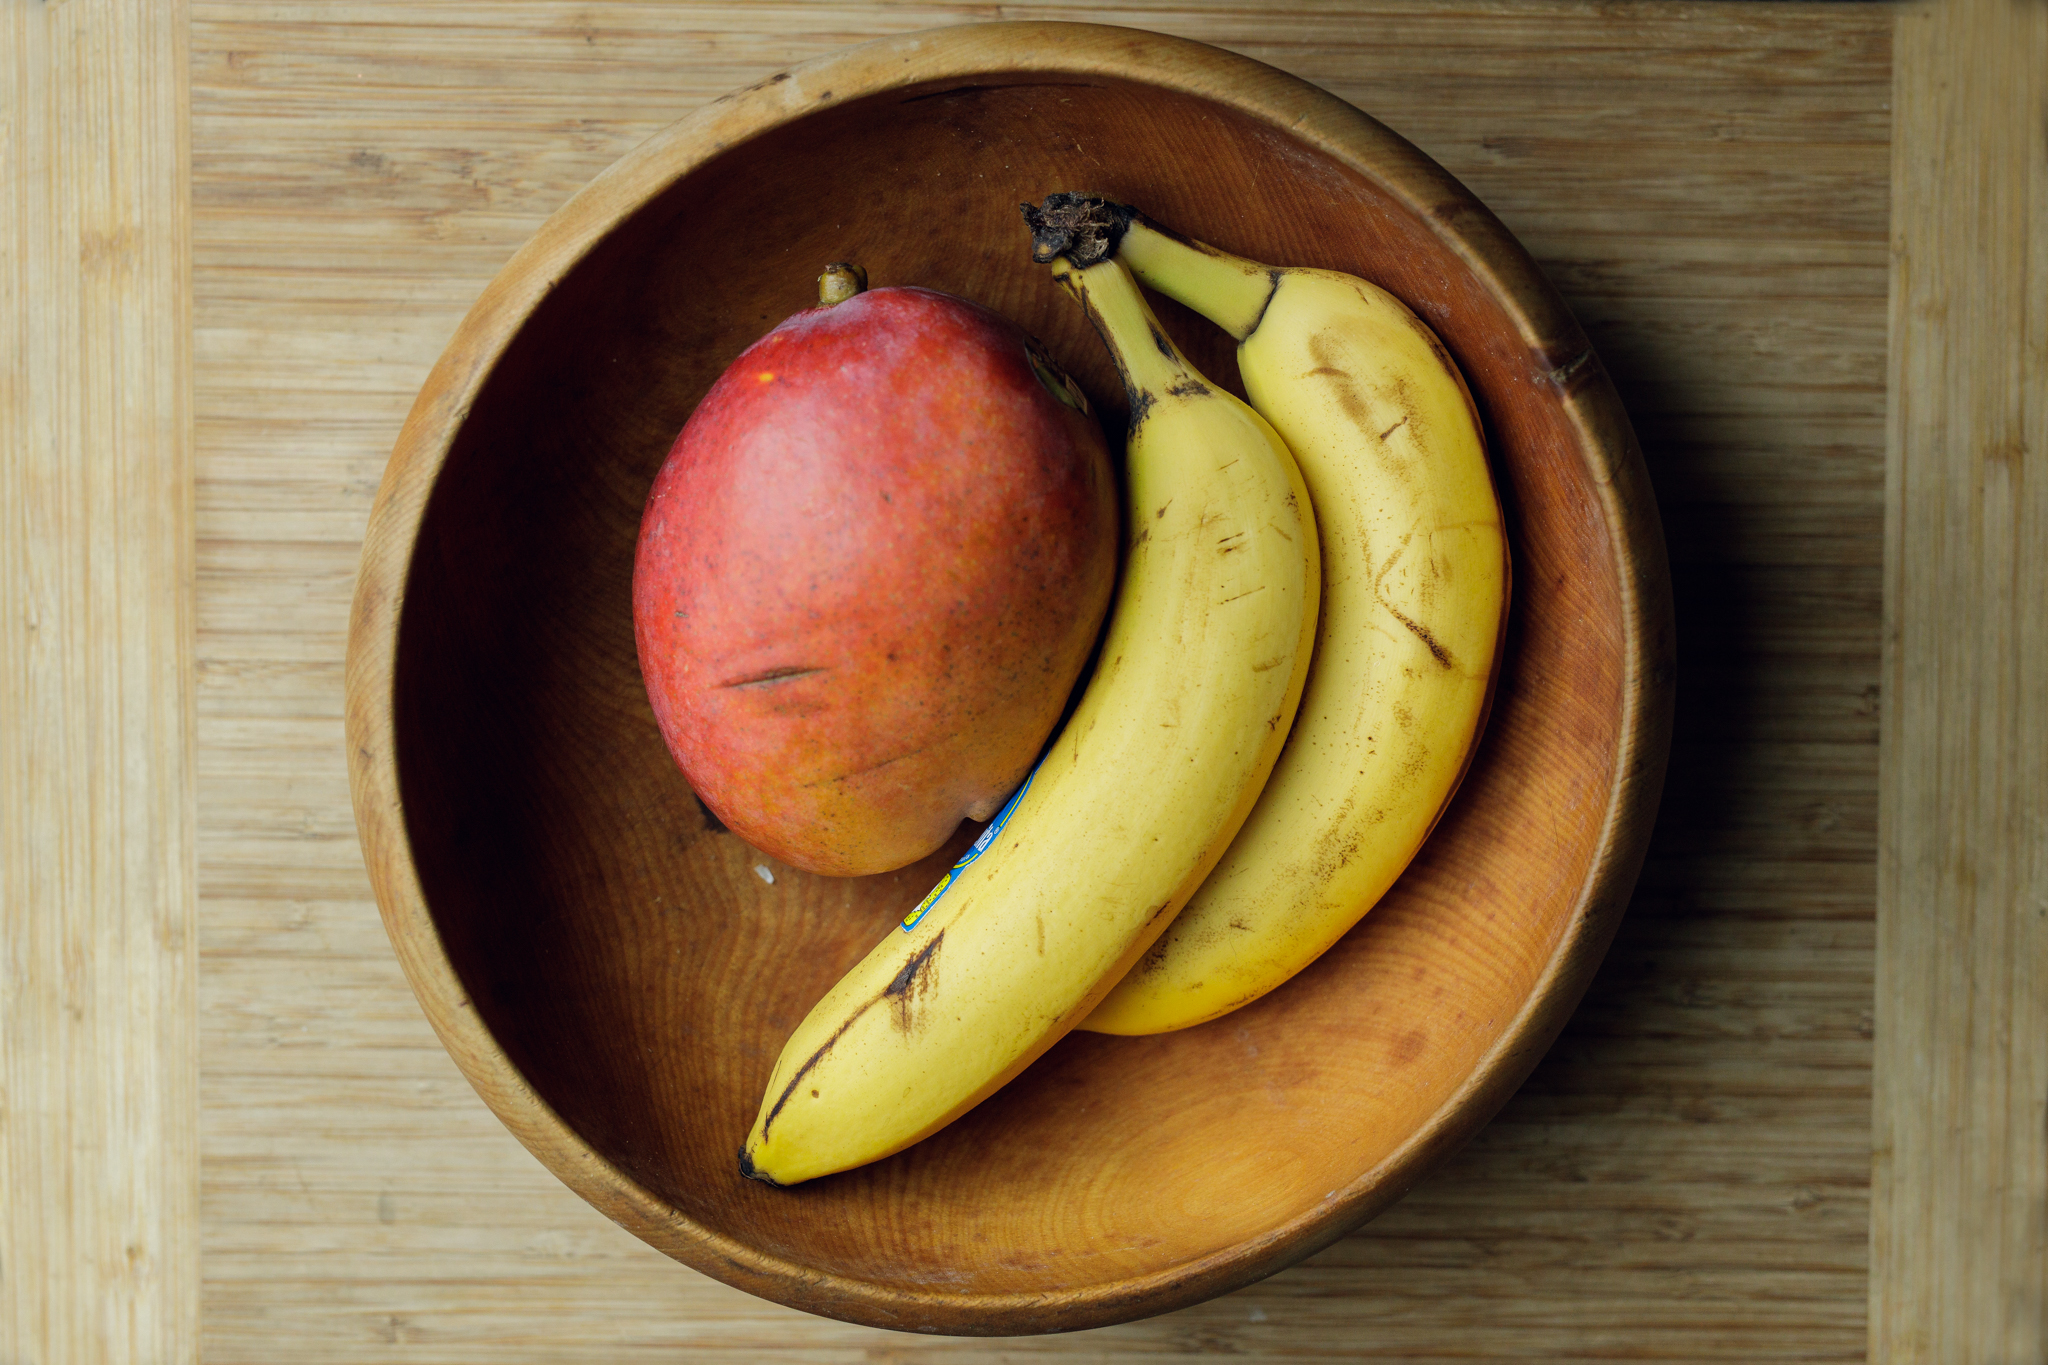 bananas and mango in a wooden bowl